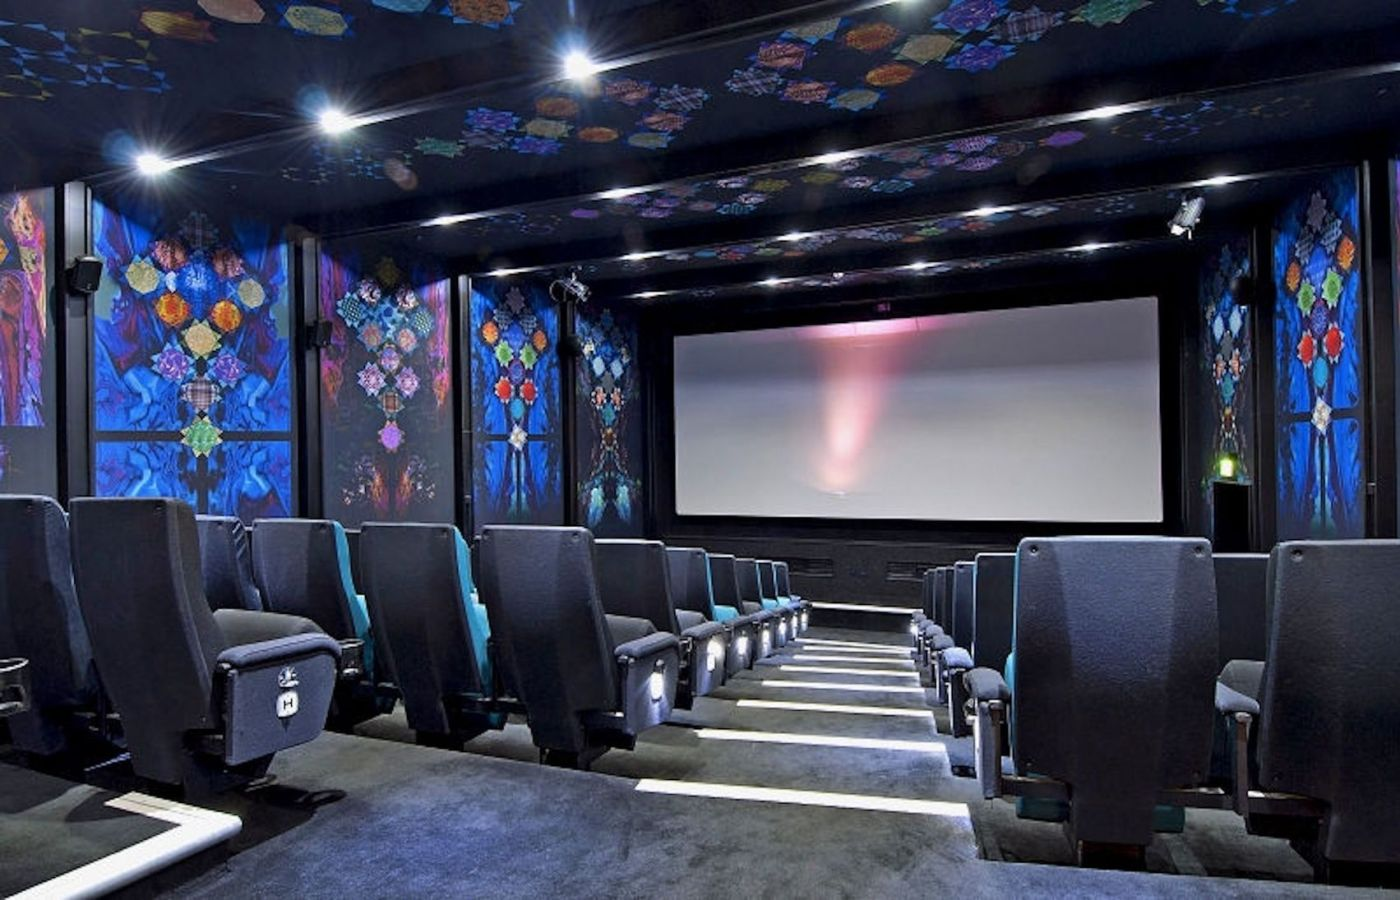 A cinema room with blue patterned walls